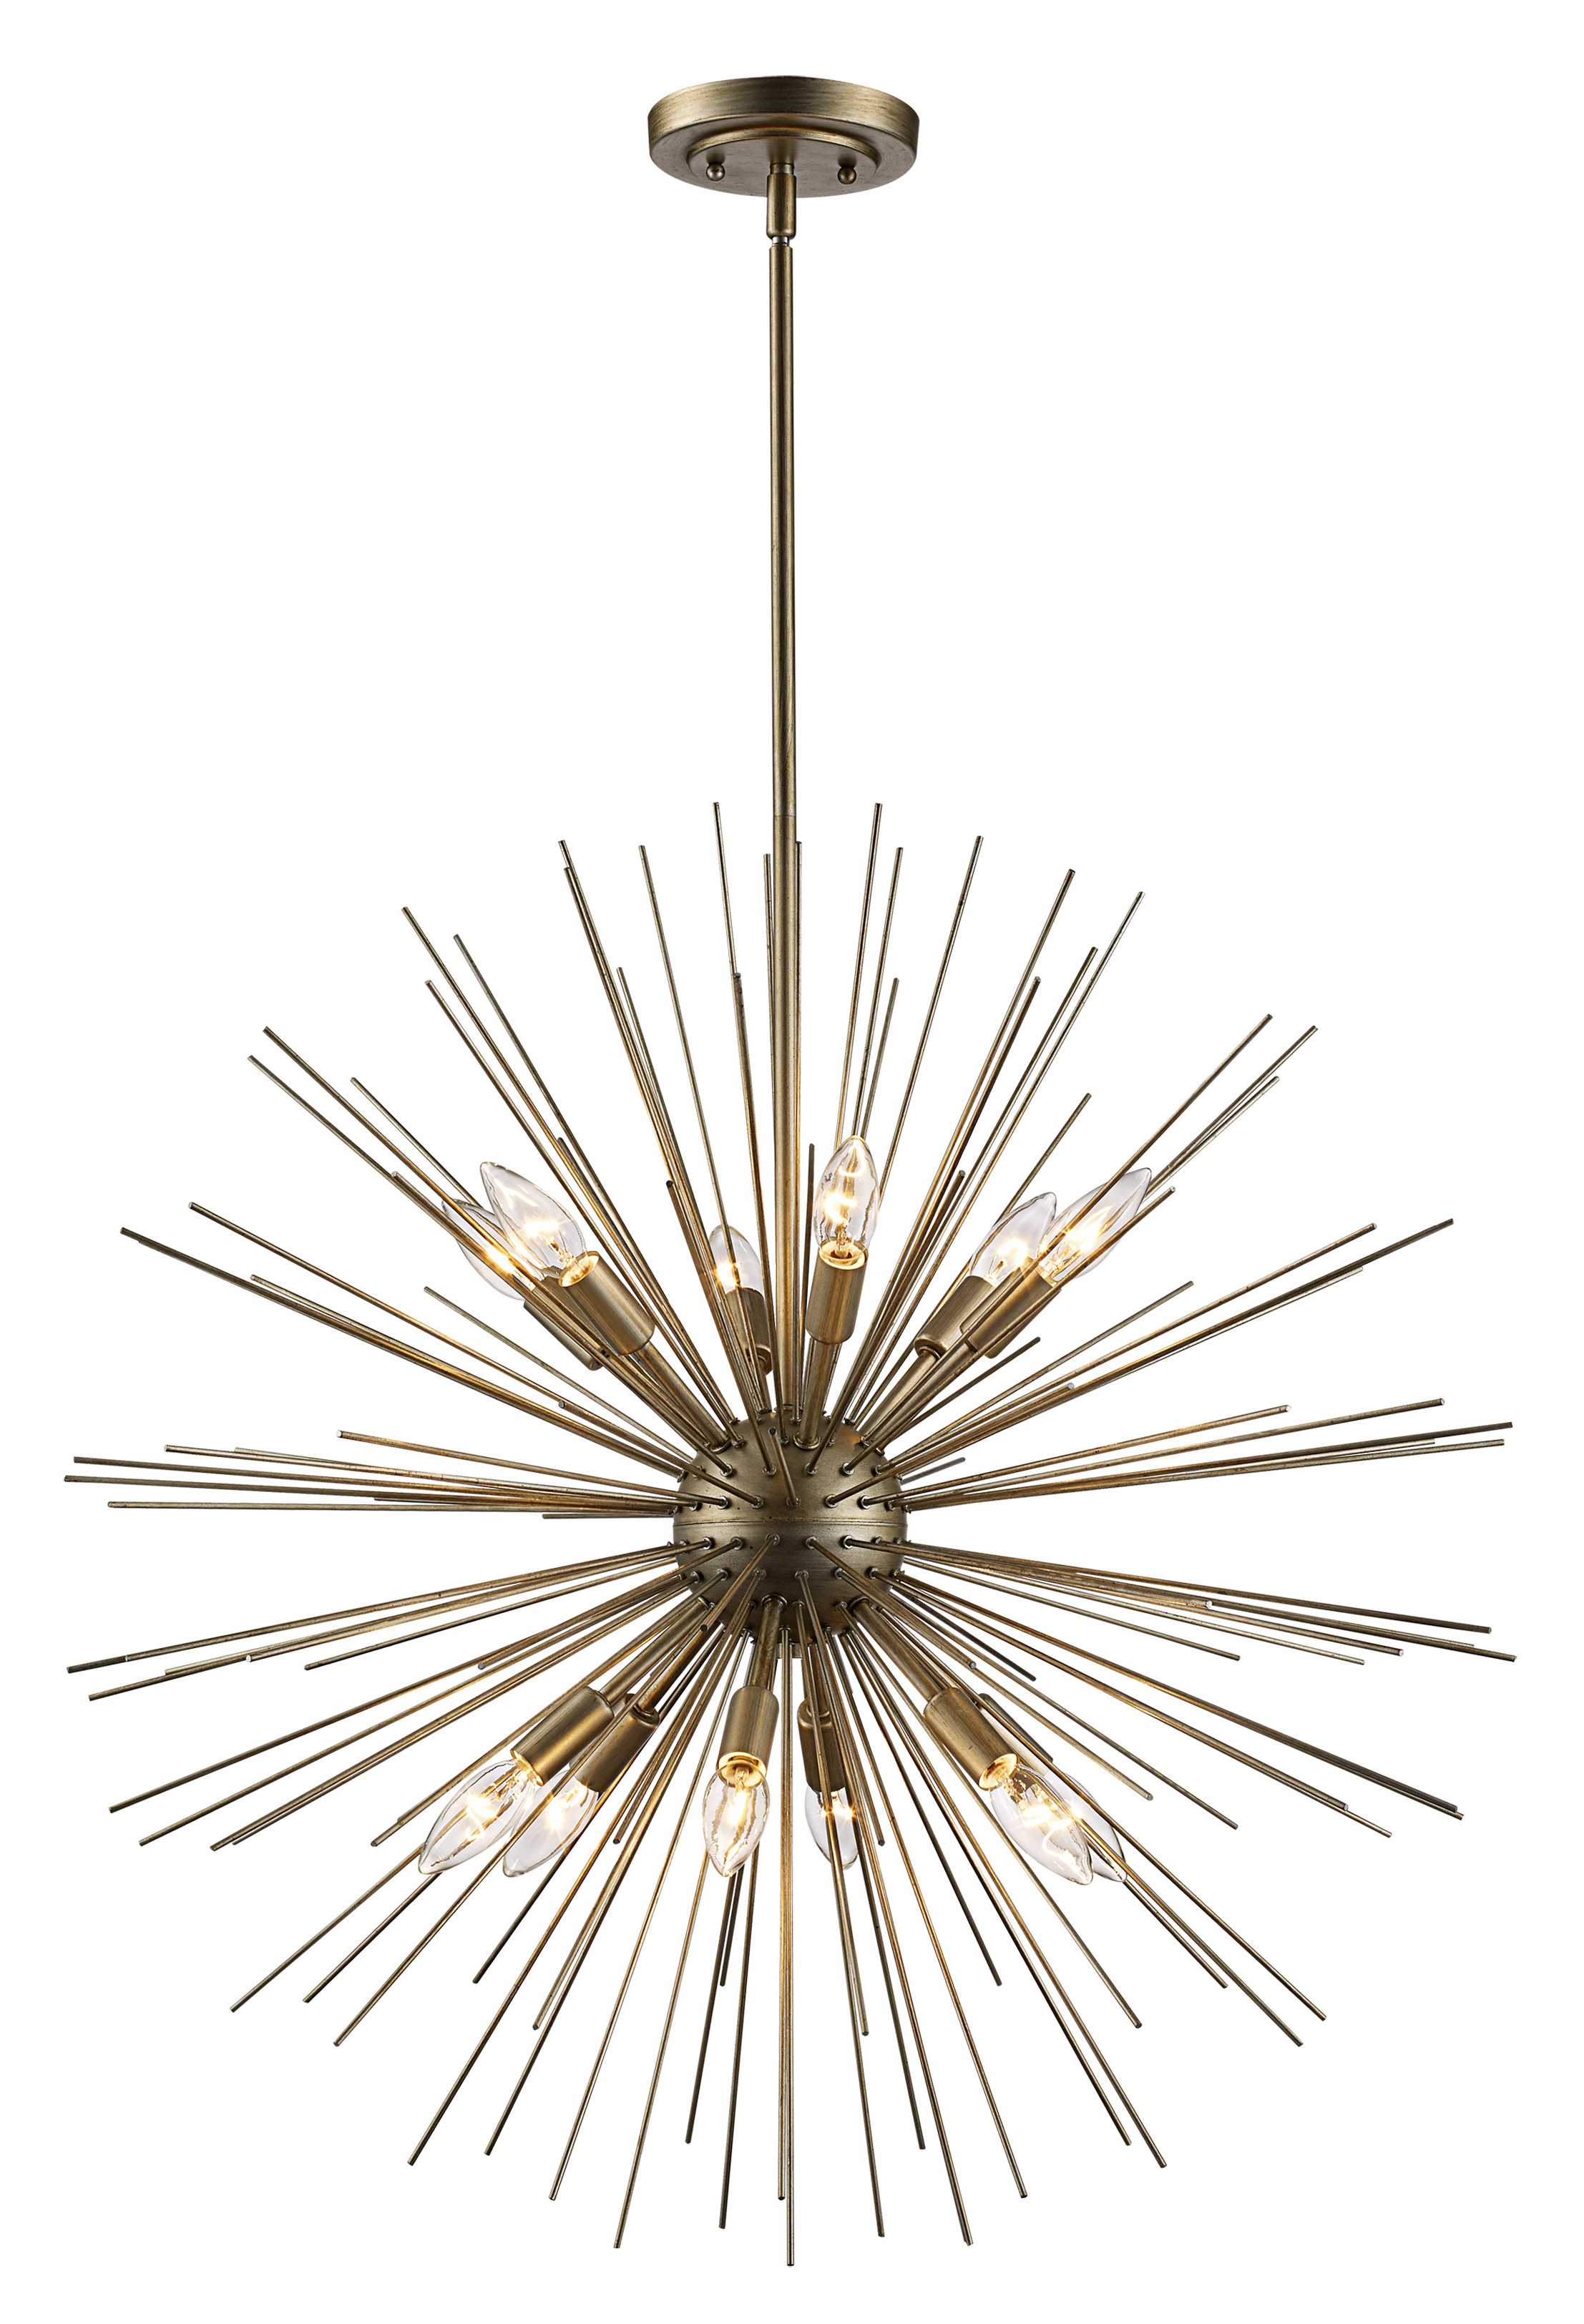 Antonie 12 Light Sputnik Chandelier Pertaining To Most Up To Date Nelly 12 Light Sputnik Chandeliers (View 4 of 25)